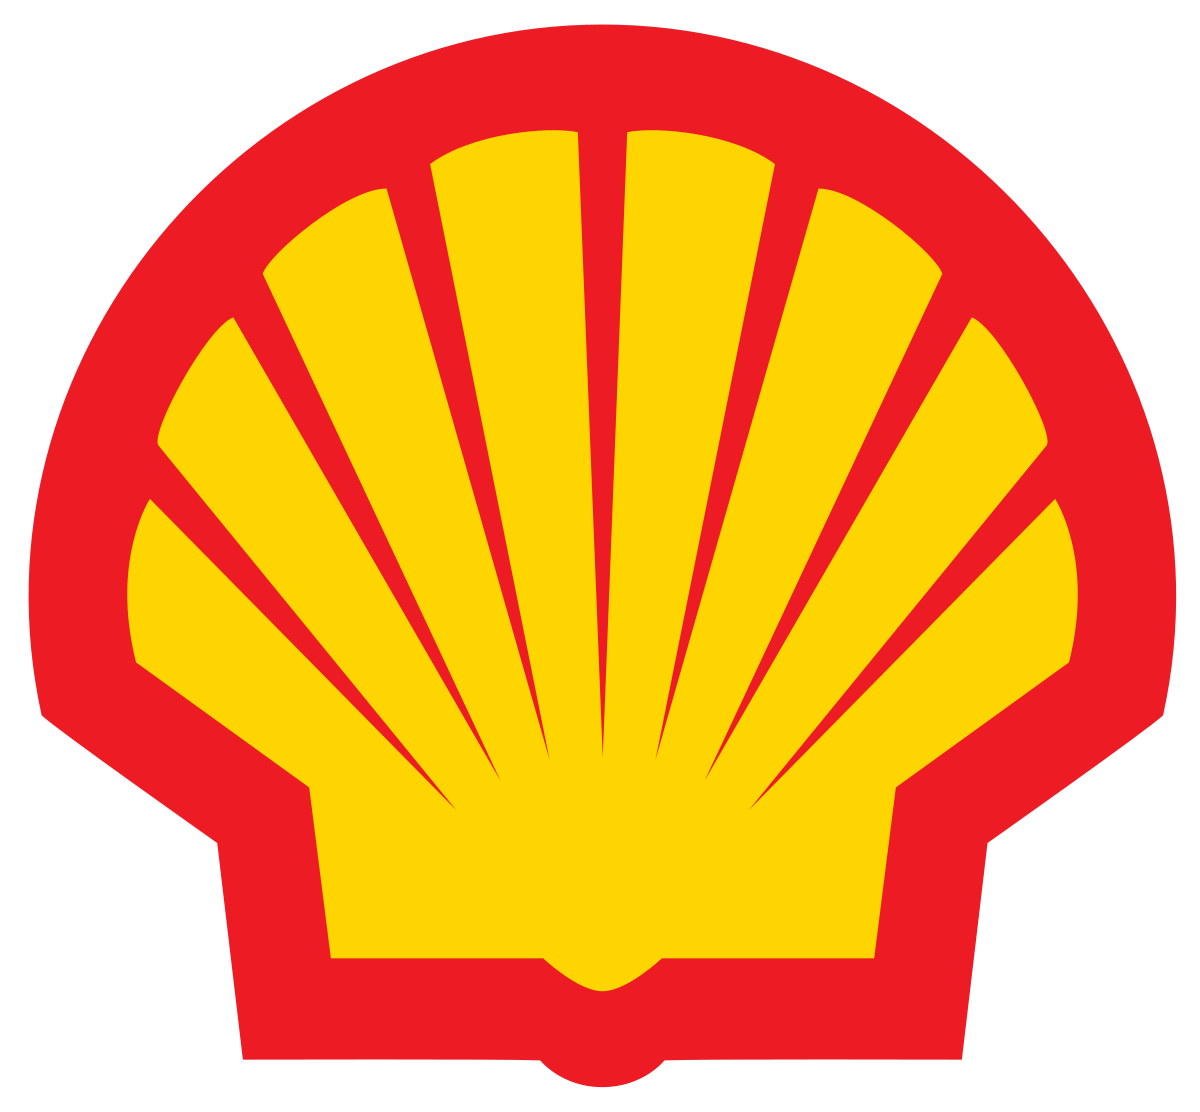 SPDC's oil production hits 514,000 bpd – Report